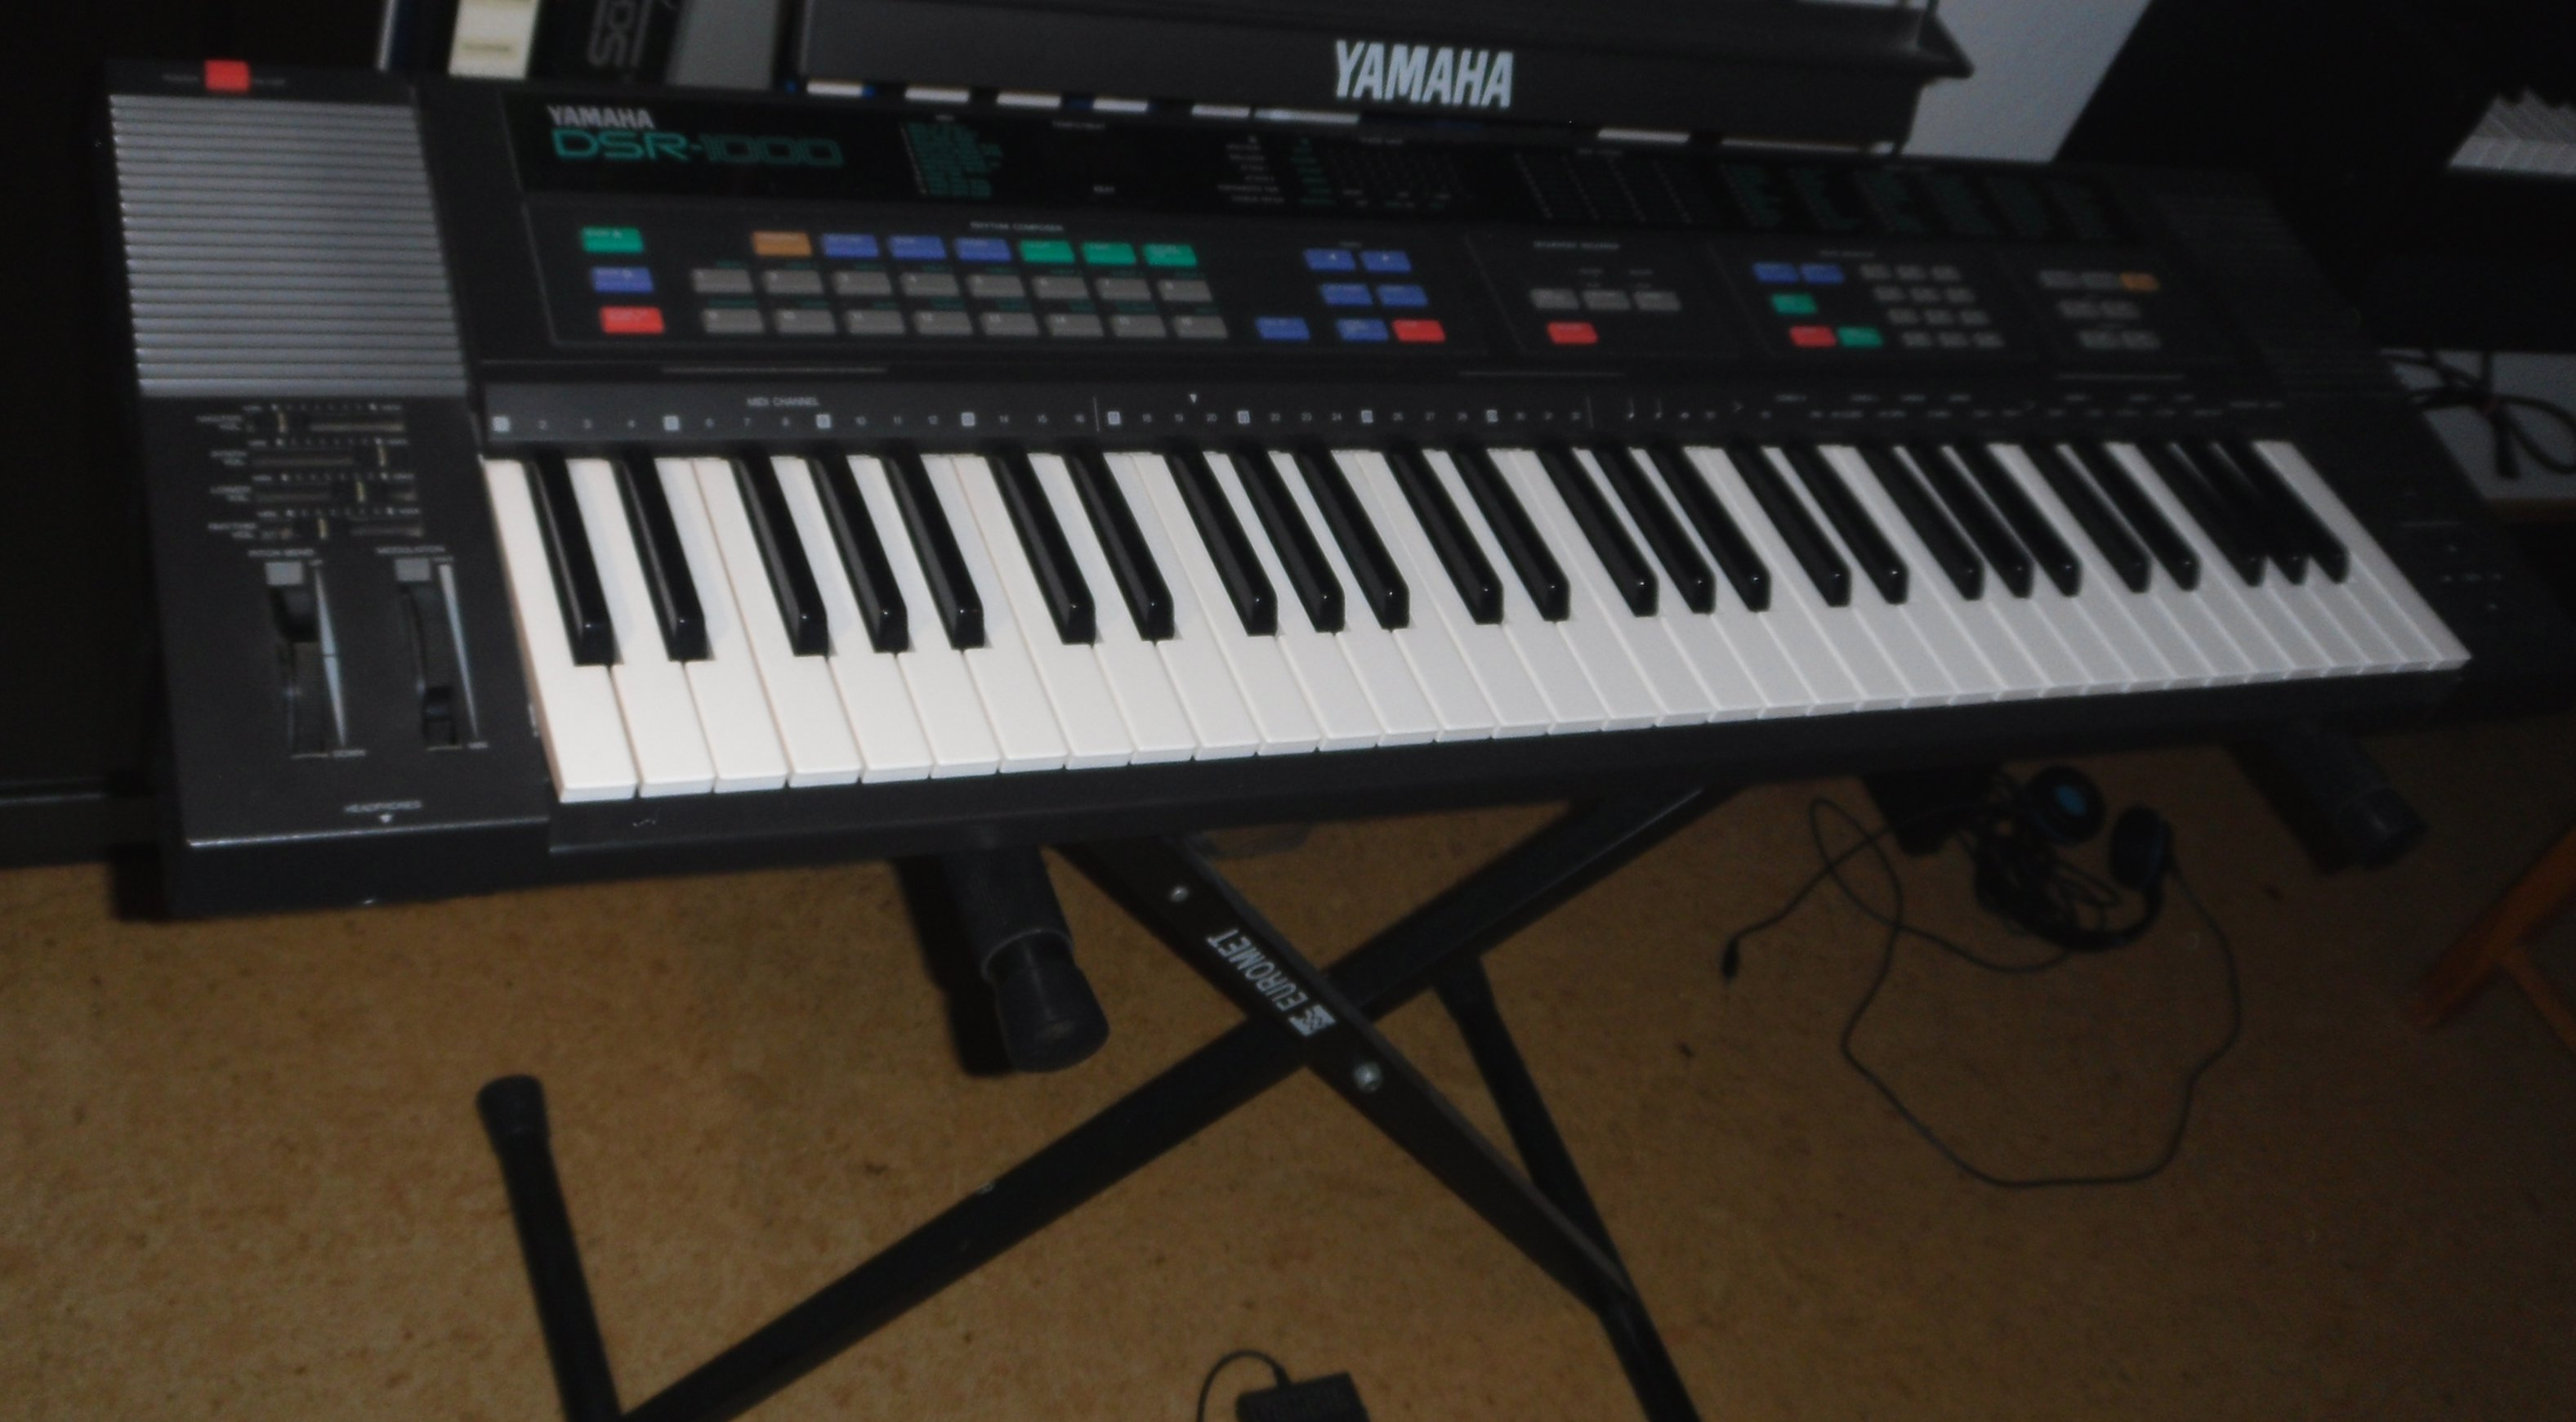 Yamaha Dsr Keyboard For Sale